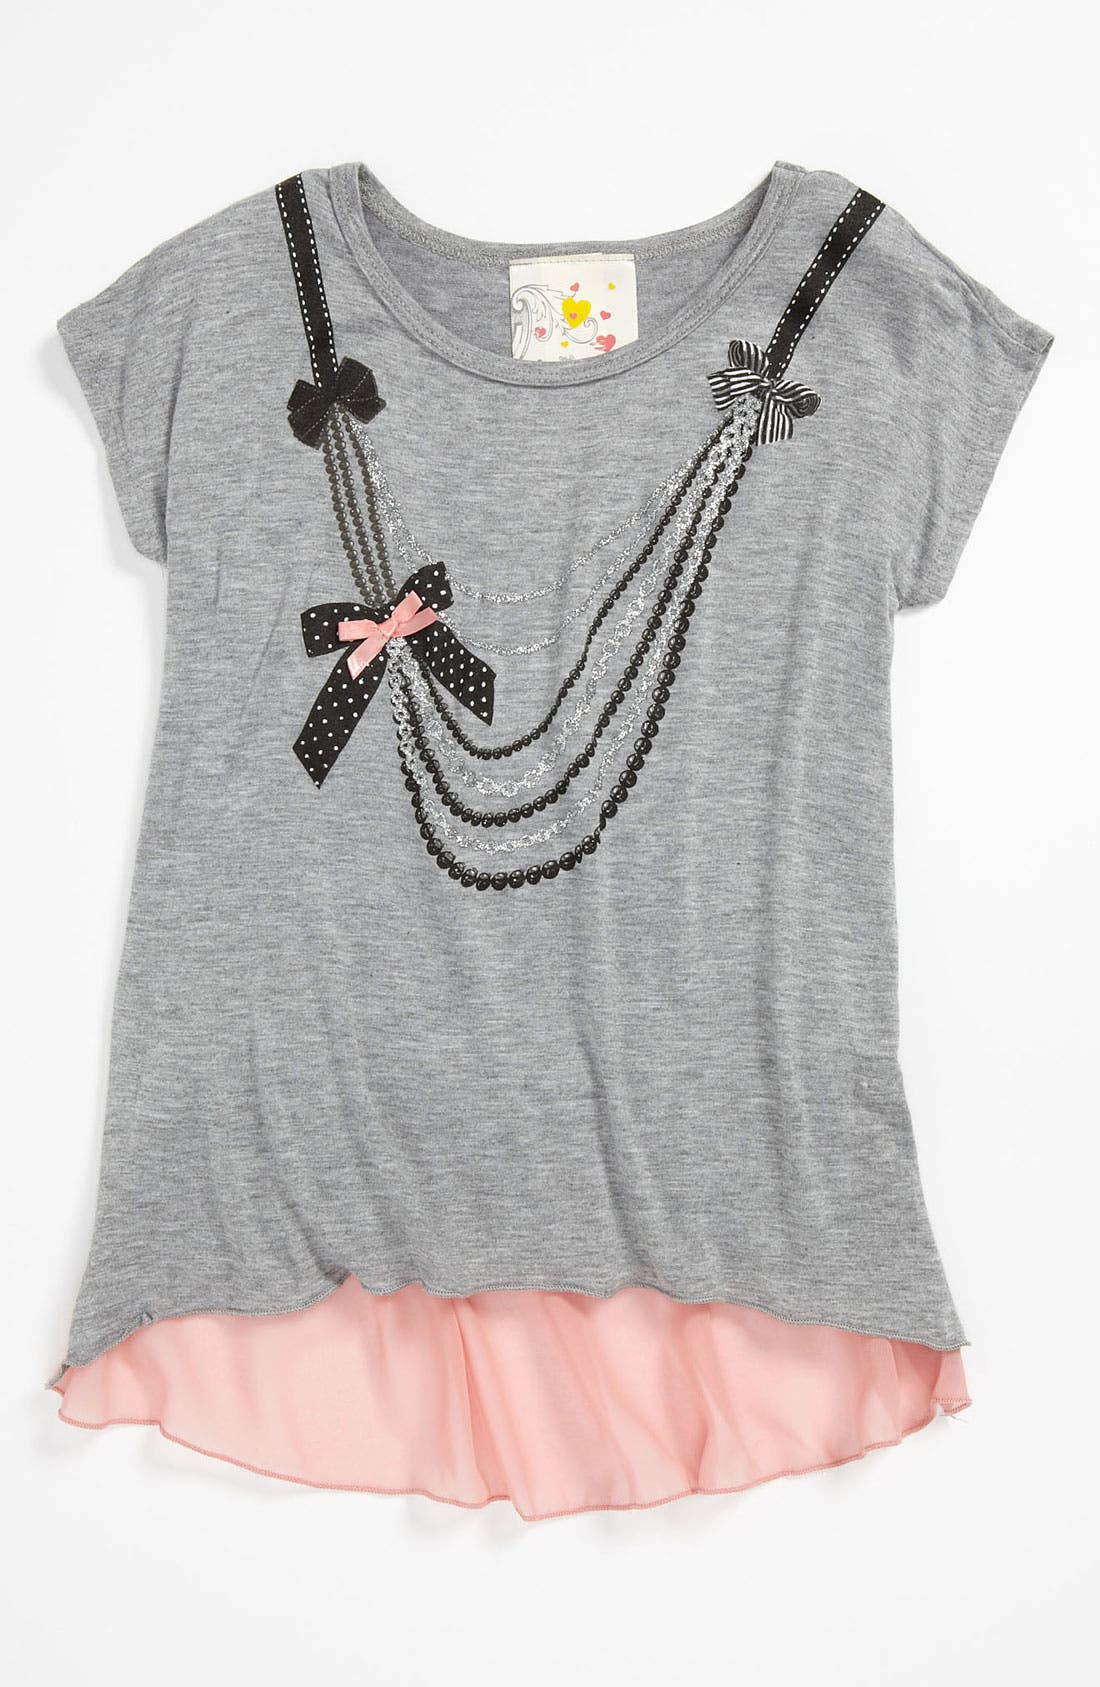 Alternate Image 1 Selected - Jenna & Jessie 'Necklace' Tee (Little Girls)